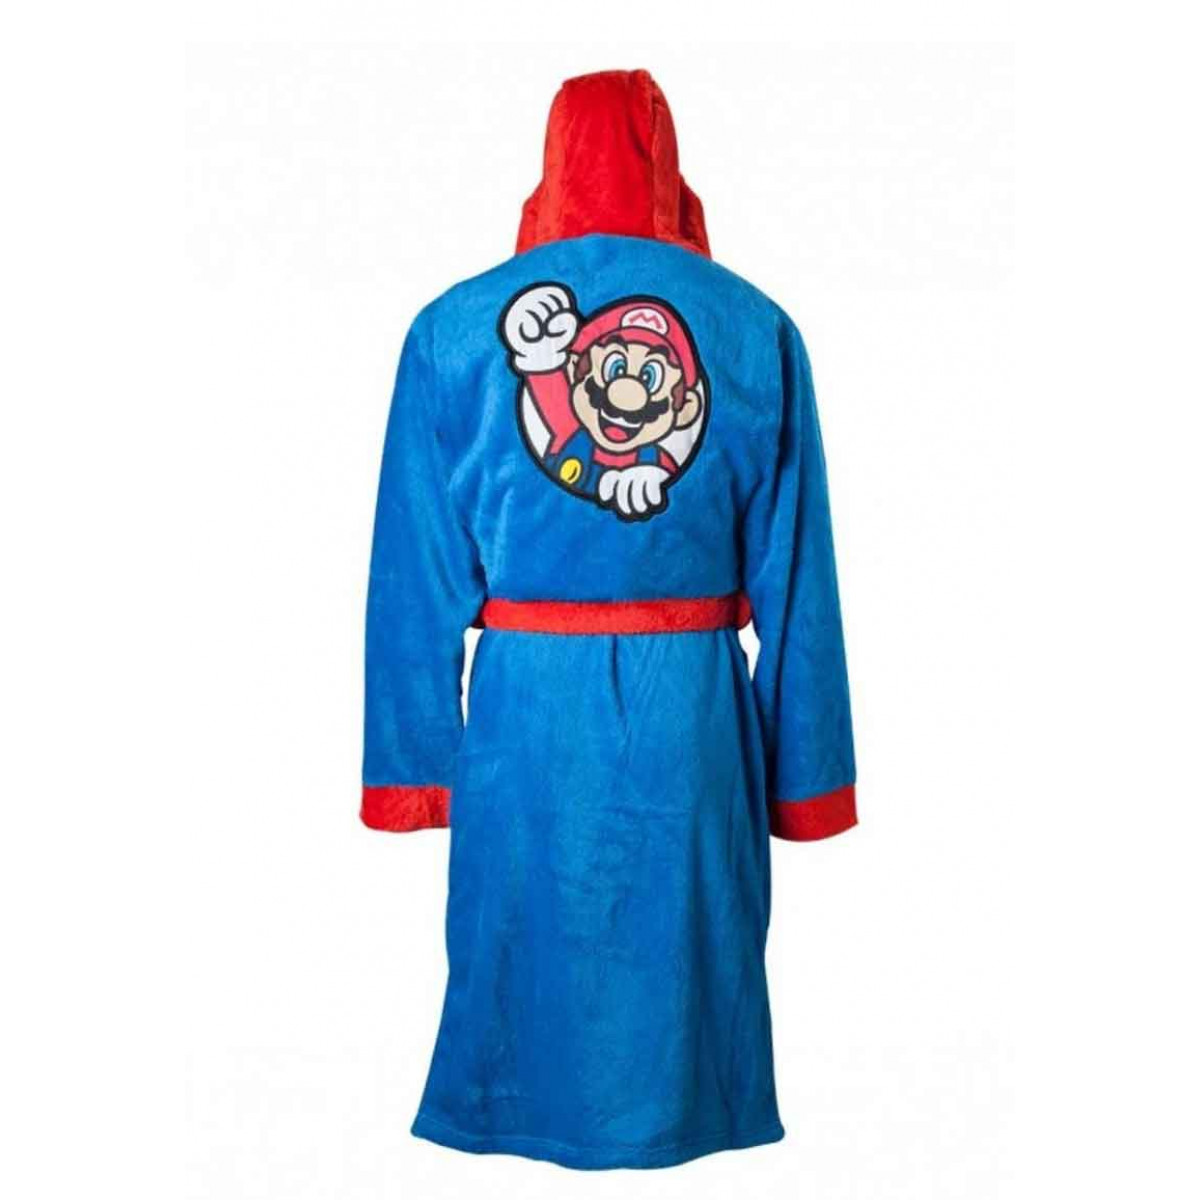 Herenbadjas Supermario fleece